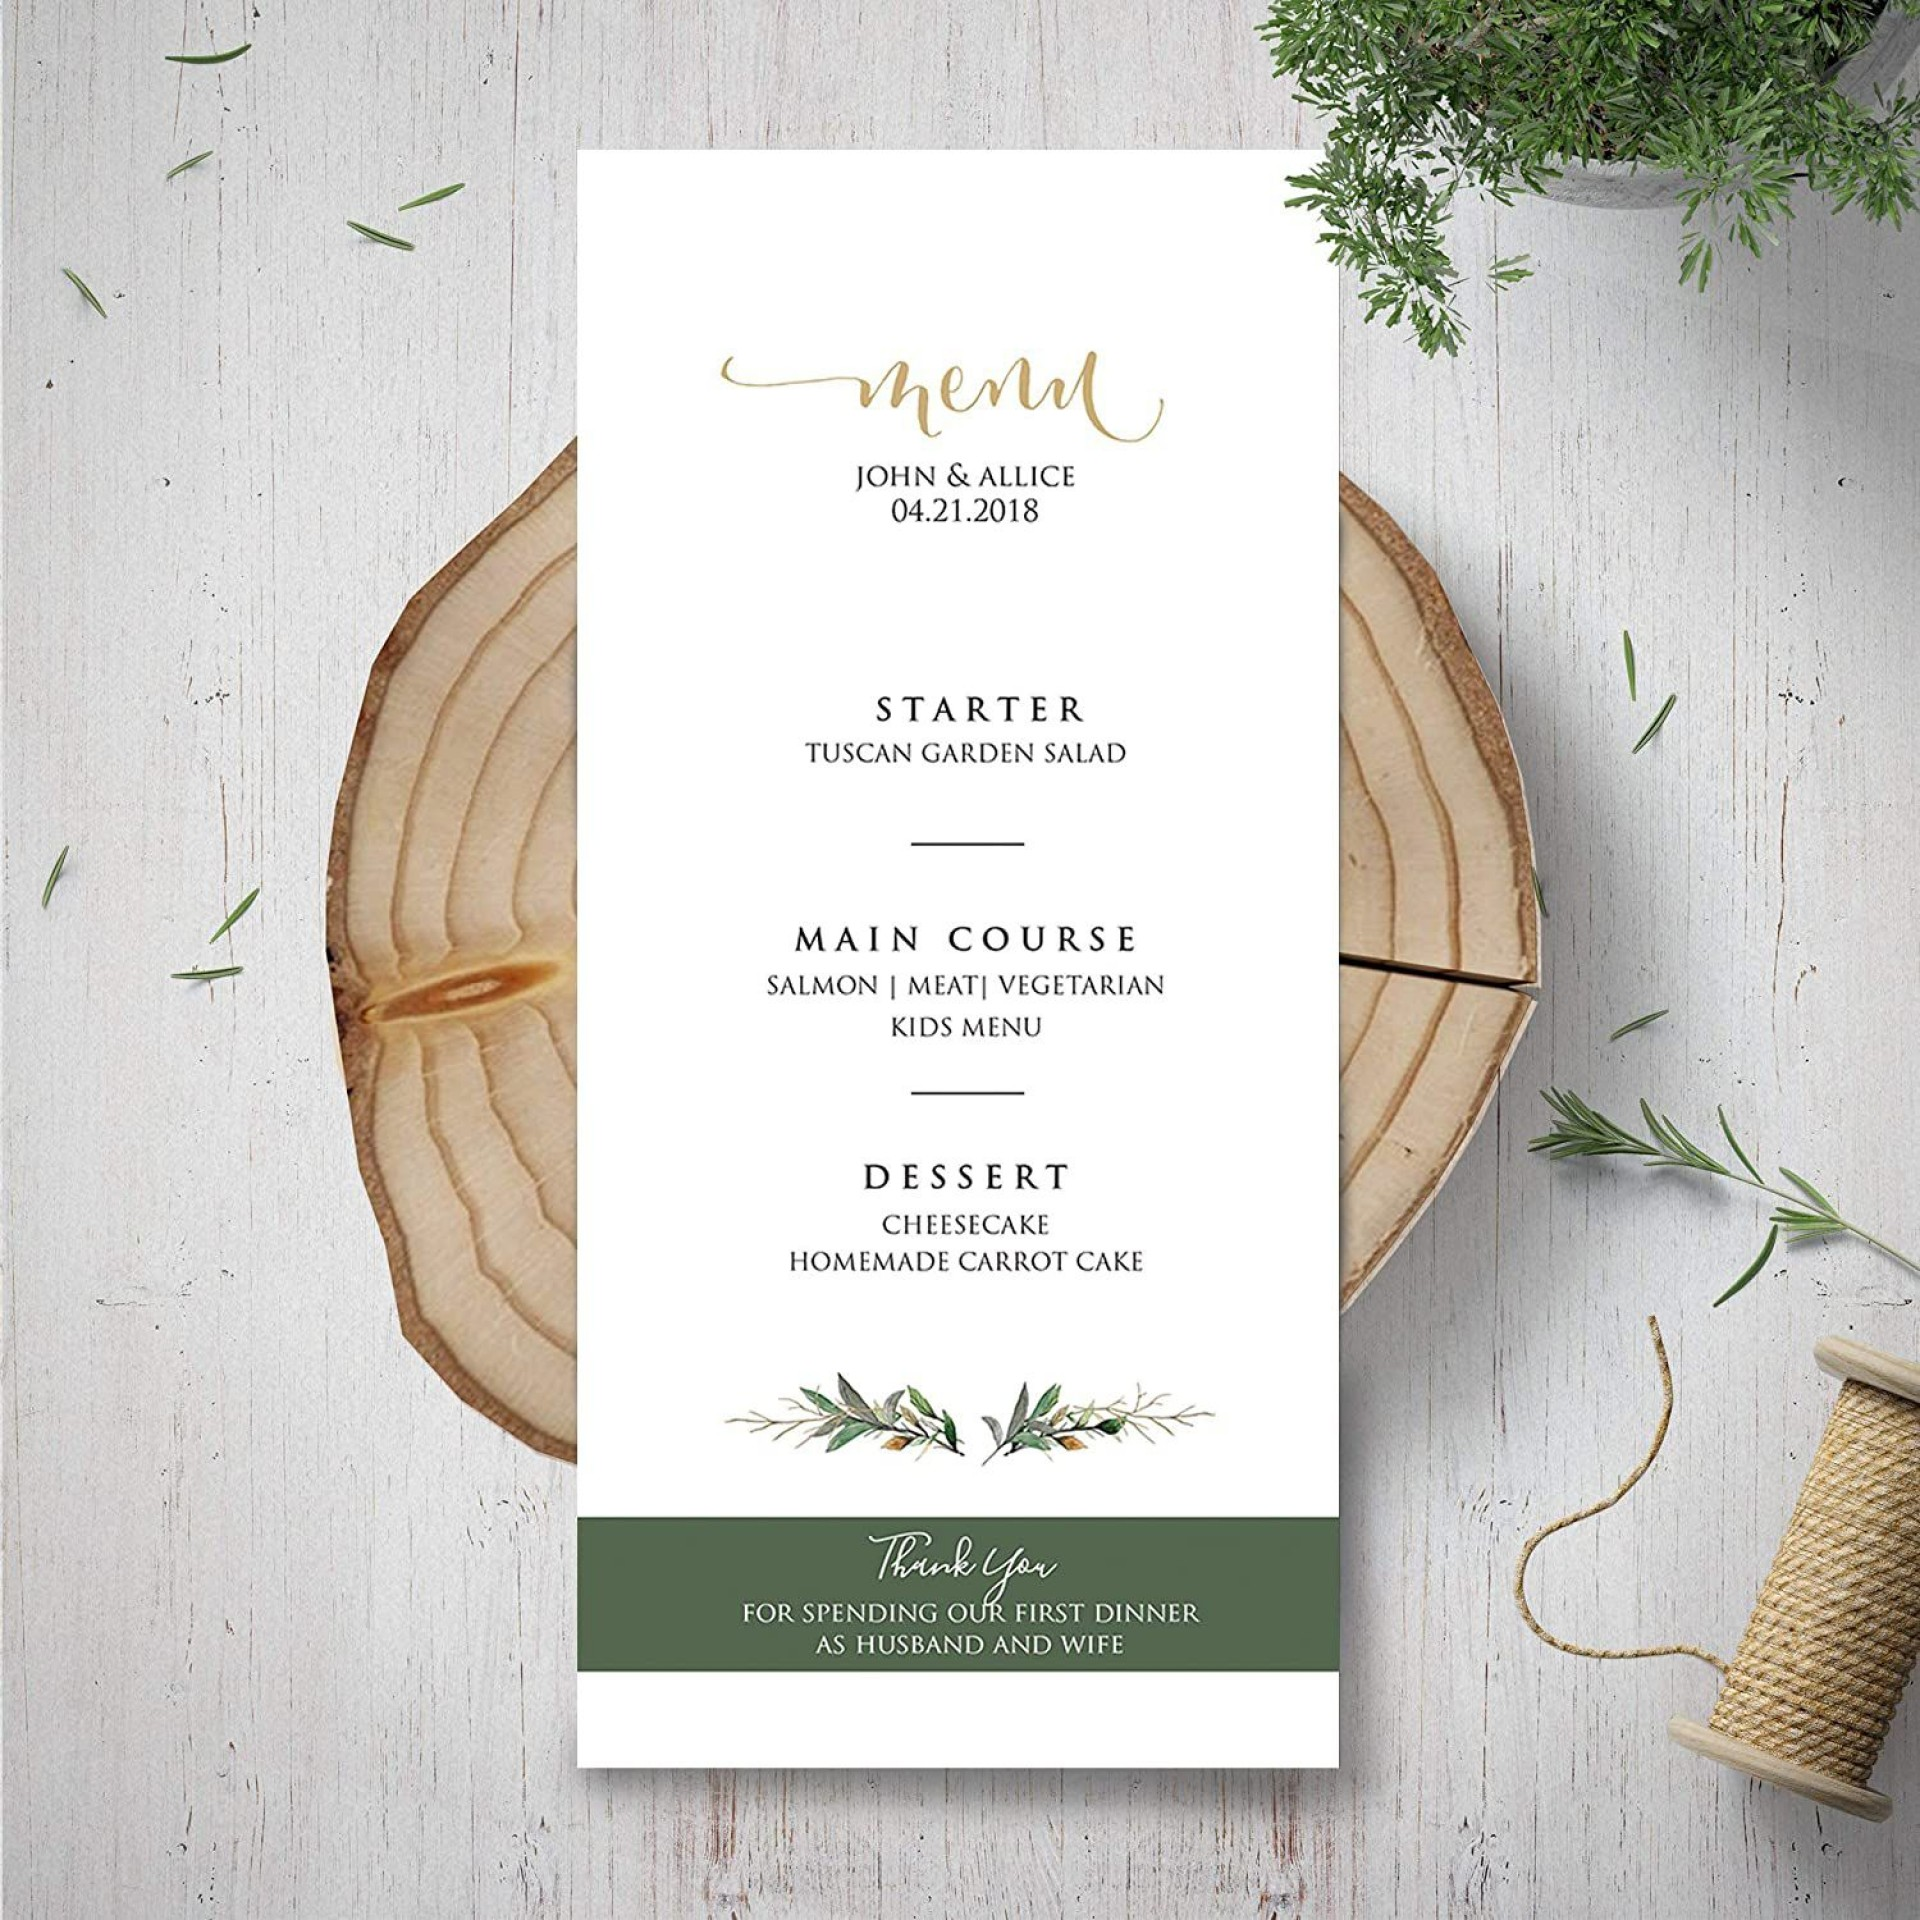 003 Exceptional Dinner Party Menu Template Inspiration  Word Elegant Free Google Doc1920